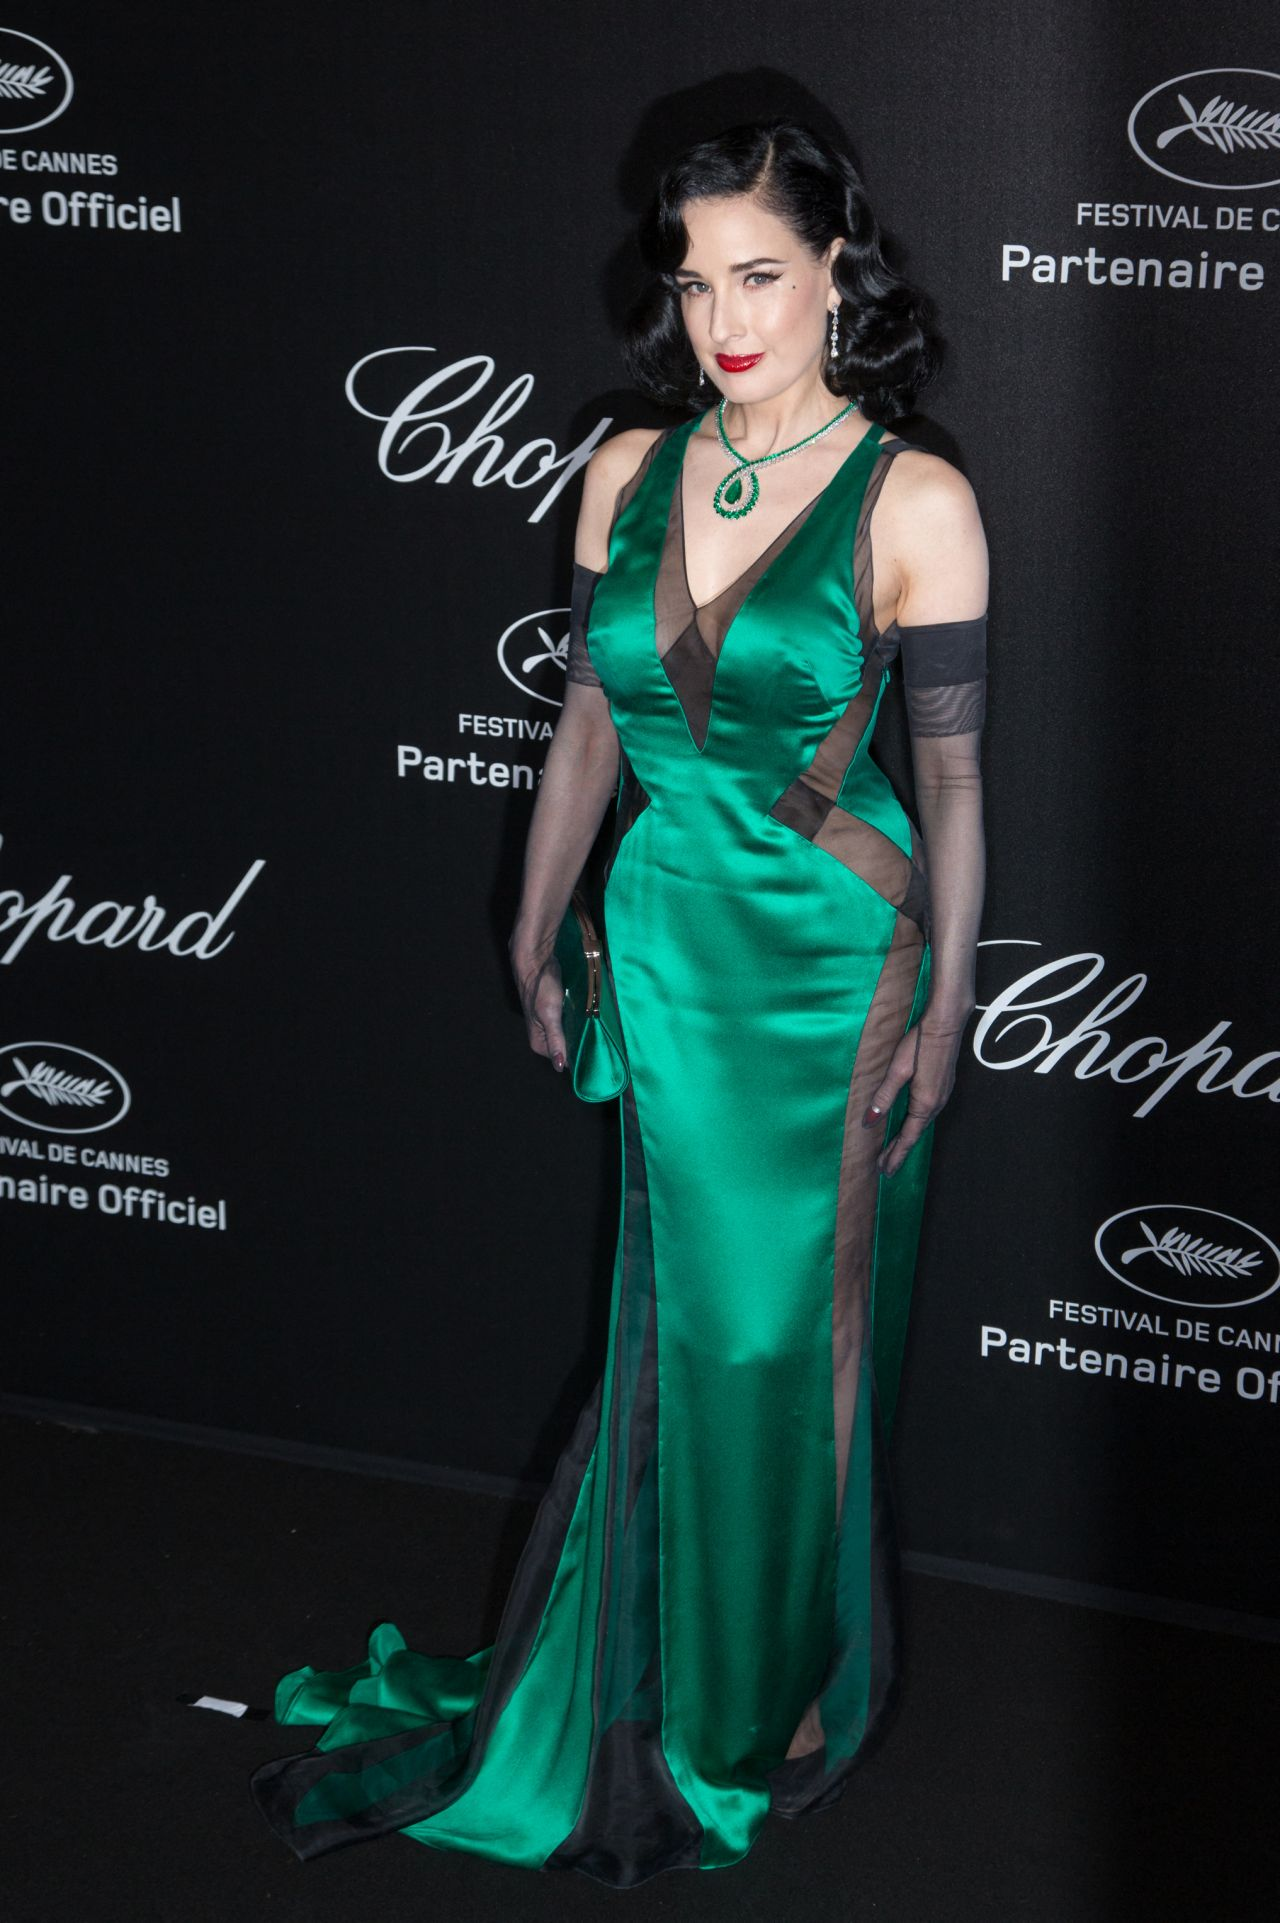 https://celebmafia.com/wp-content/uploads/2019/05/dita-von-teese-chopard-party-at-the-72nd-cannes-film-festival-2.jpg